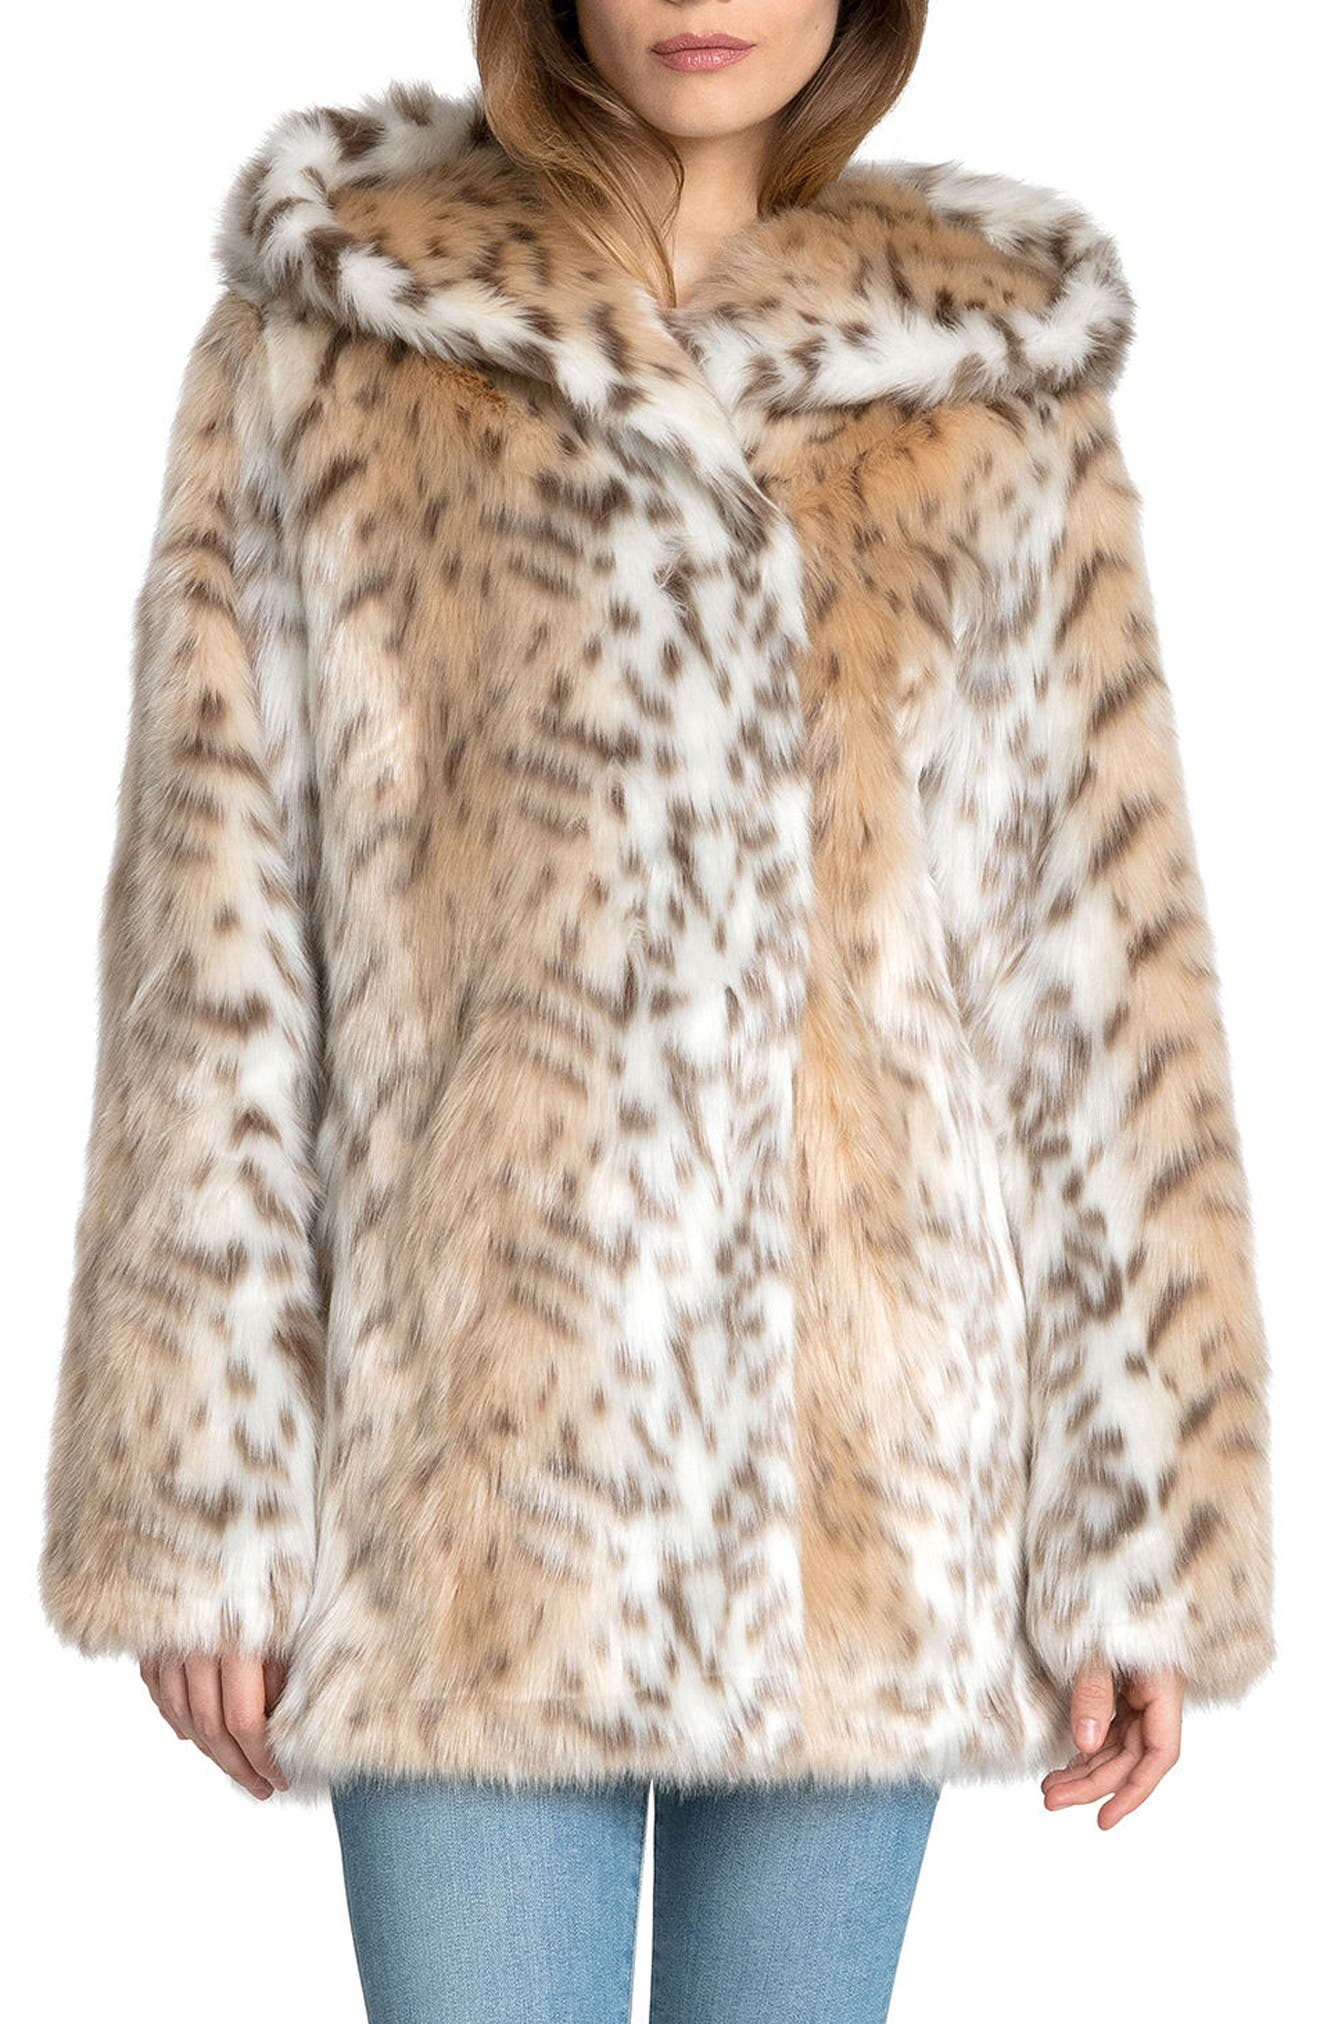 Hooded Faux Fur Jacket,                             Main thumbnail 1, color,                             251